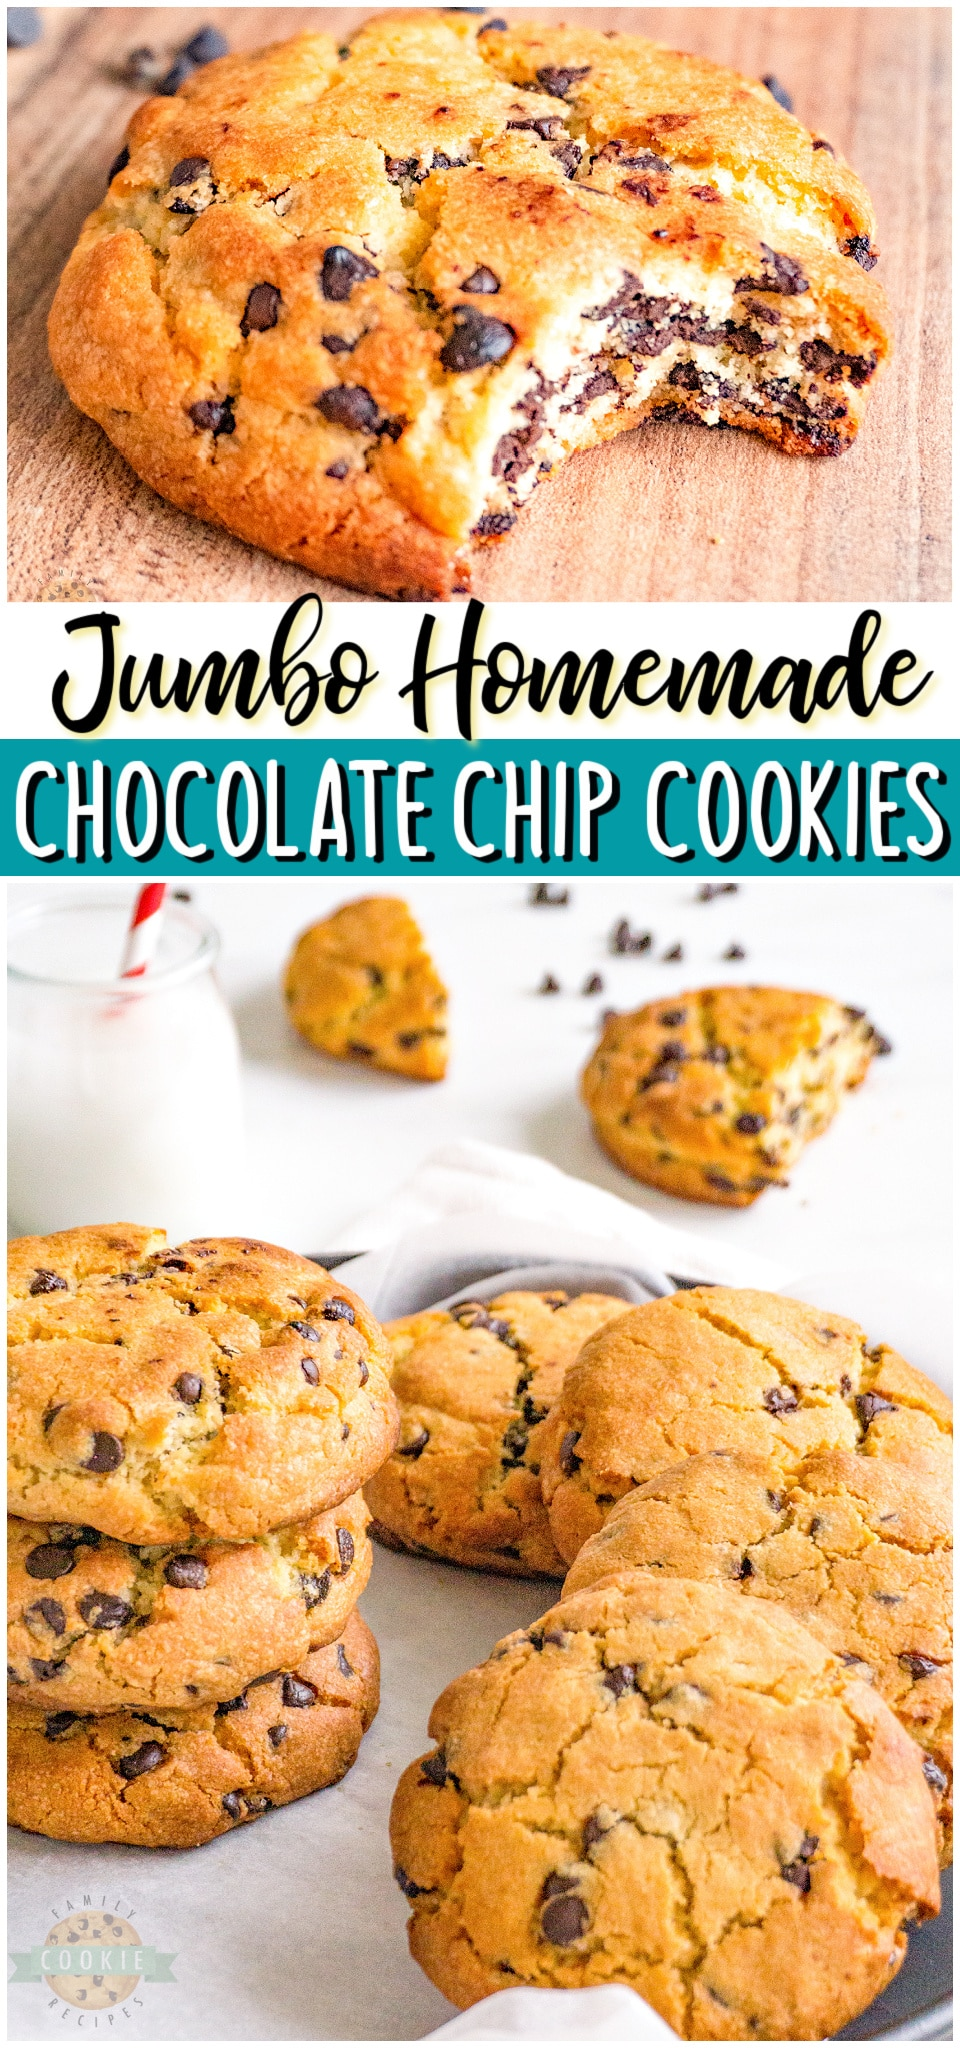 Jumbo Chocolate Chip Cookies made with classic ingredients & twice the size of traditional cookies! Soft, chewy & thick chocolate chip recipe perfect for cookie lovers!